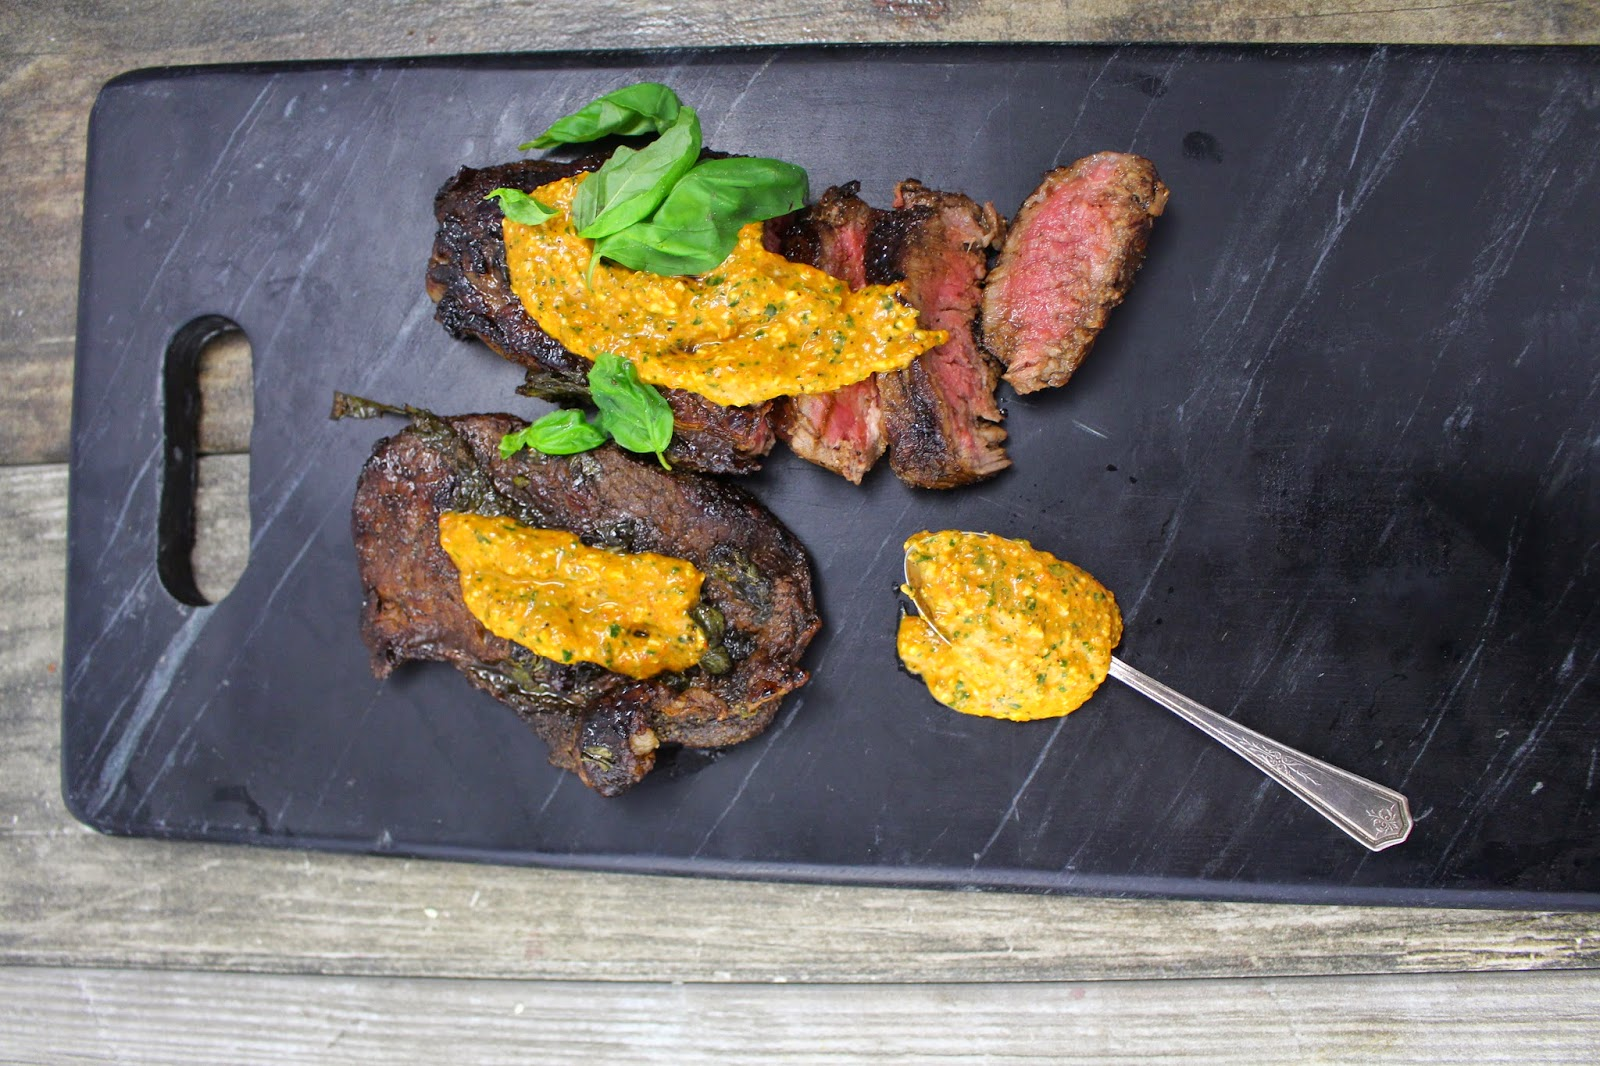 balsamic basil marinated steak